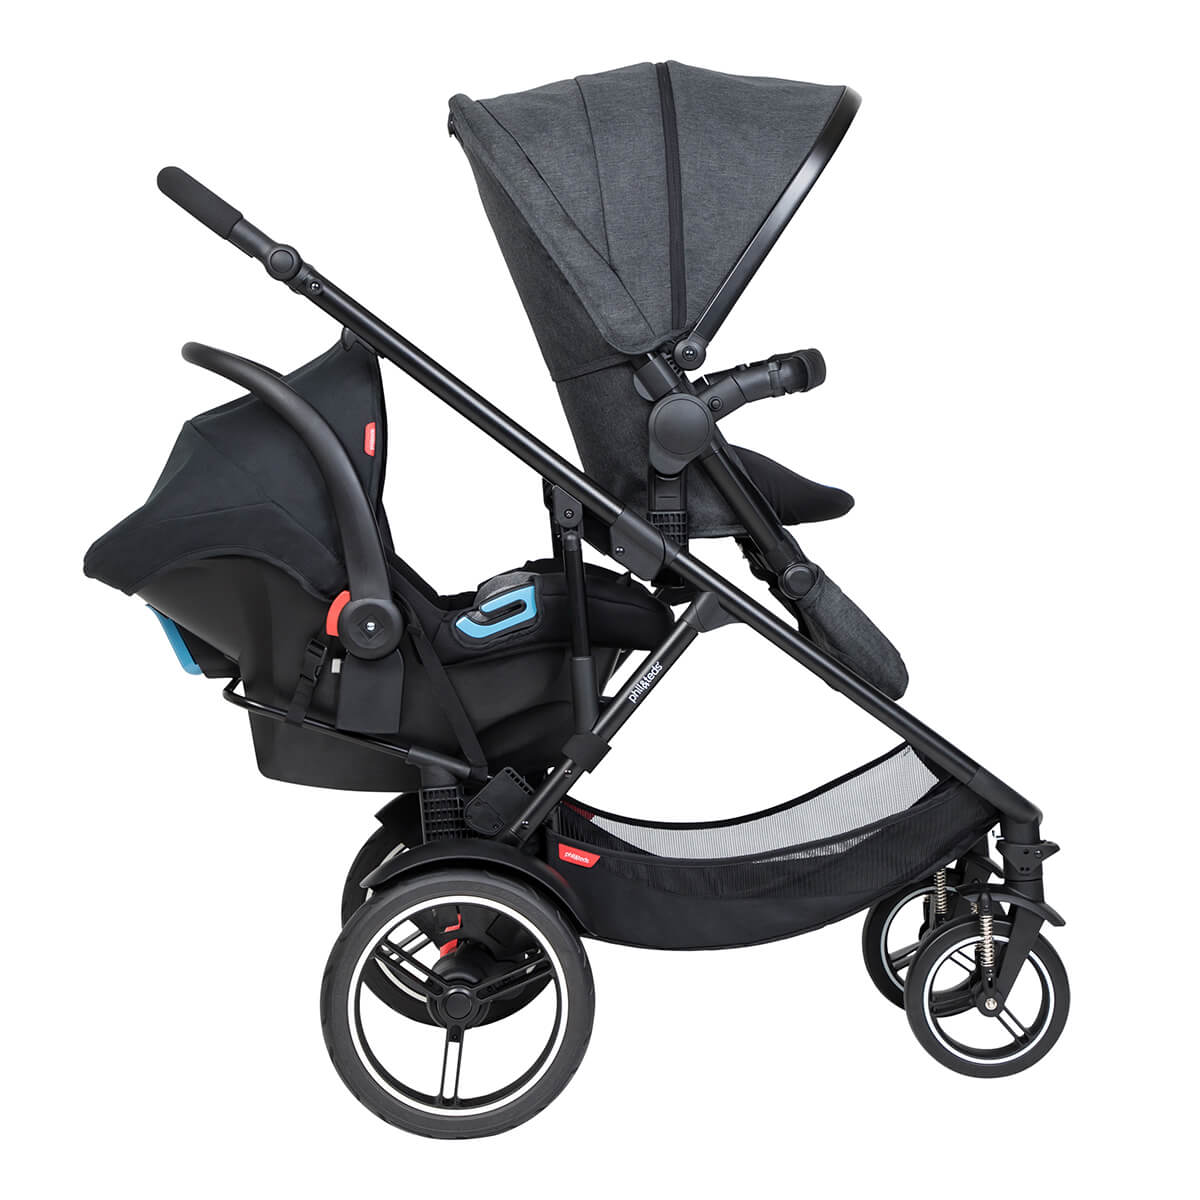 https://cdn.accentuate.io/4394653778008/19272668282968/philteds-voyager-buggy-in-forward-facing-mode-with-travel-system-in-the-rear-v1626484570130.jpg?1200x1200